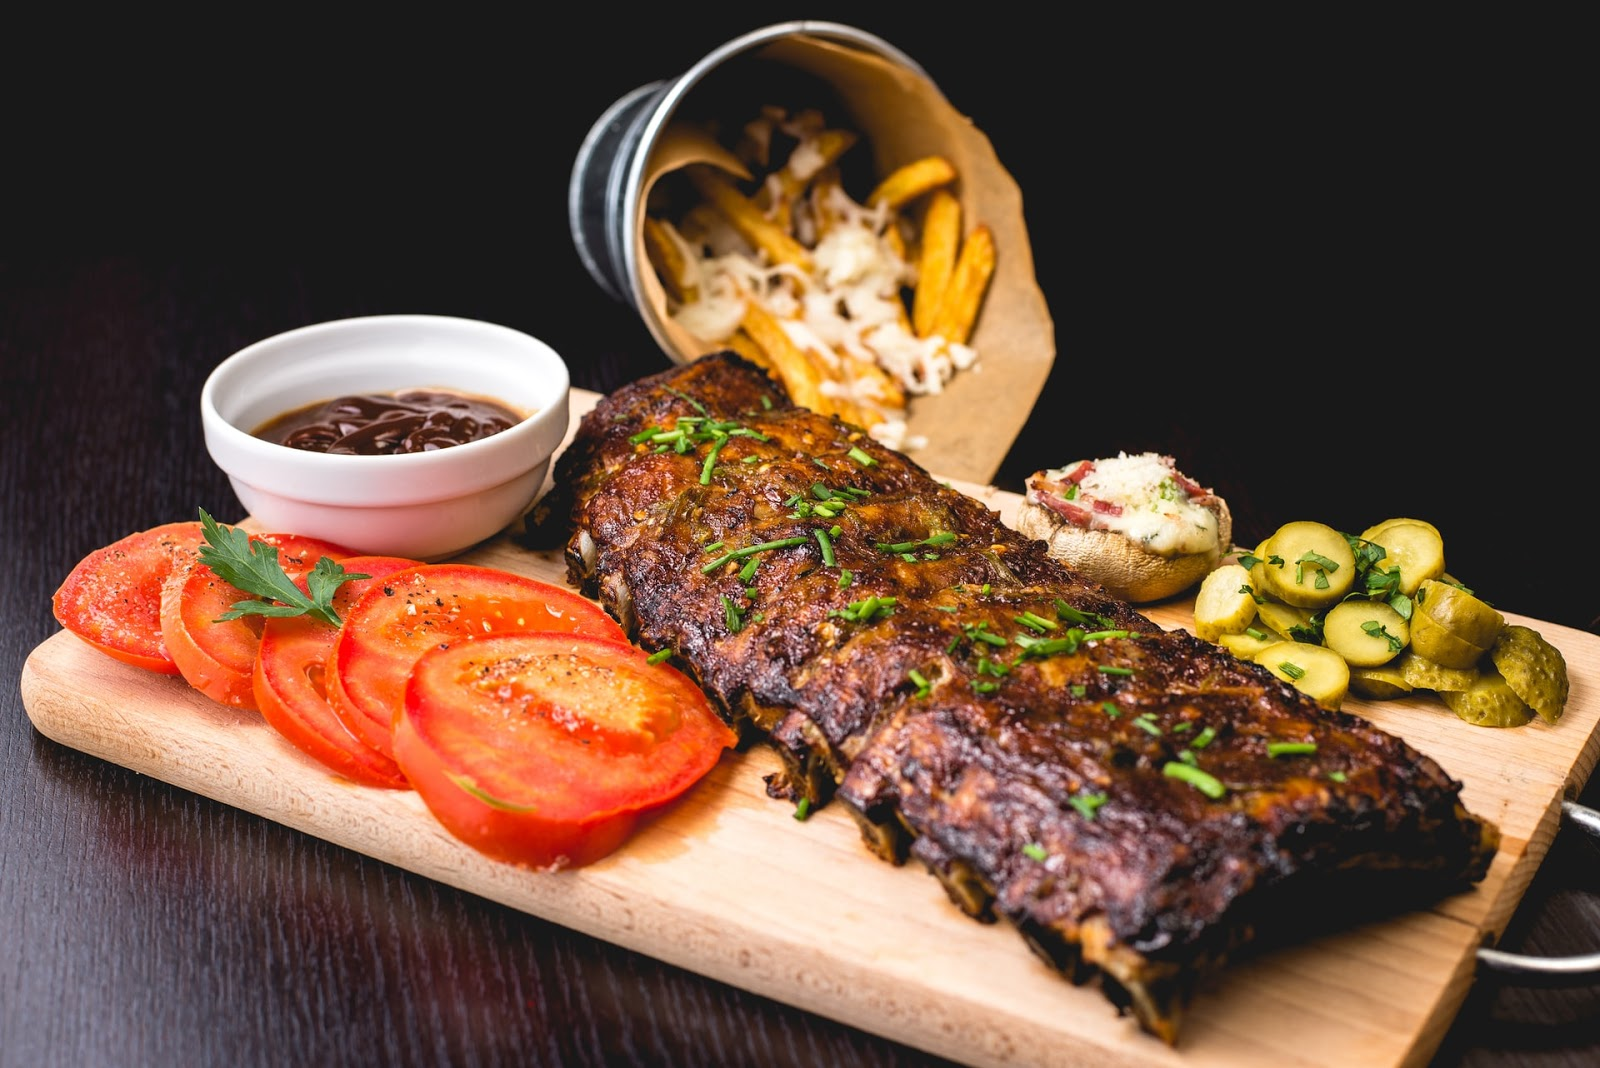 plate of barbecue ribs